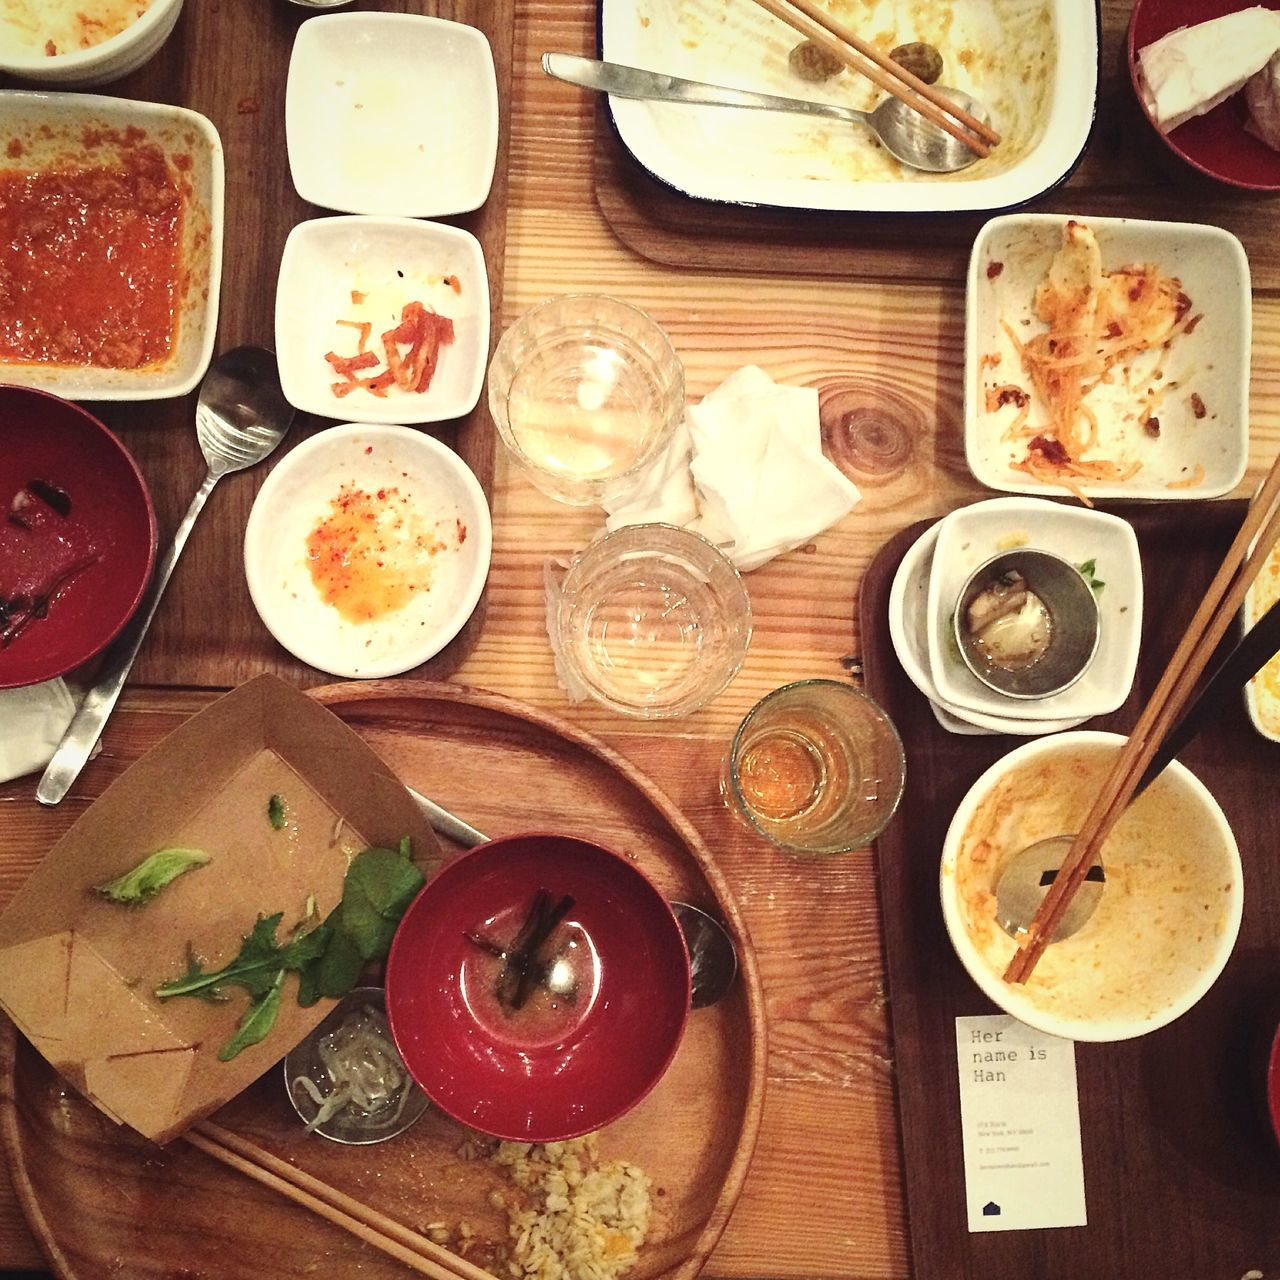 Lunchy times Korean Food Lunch Time!